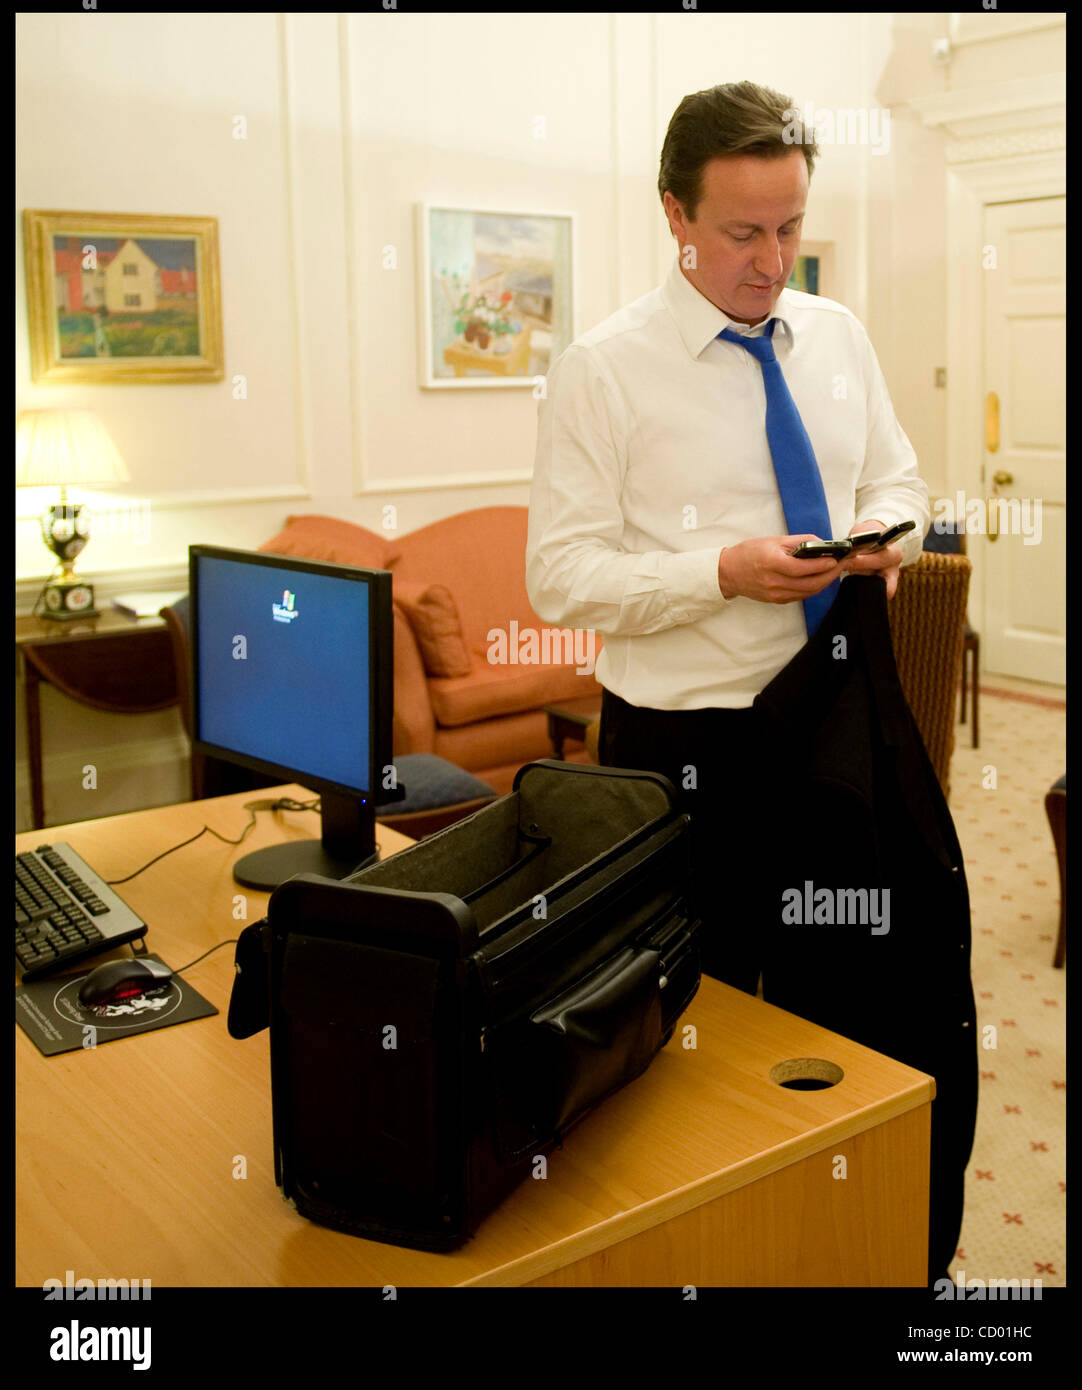 May 12 2010 london uk the prime minister david cameron checks stock photo royalty free - Office of prime minister uk ...